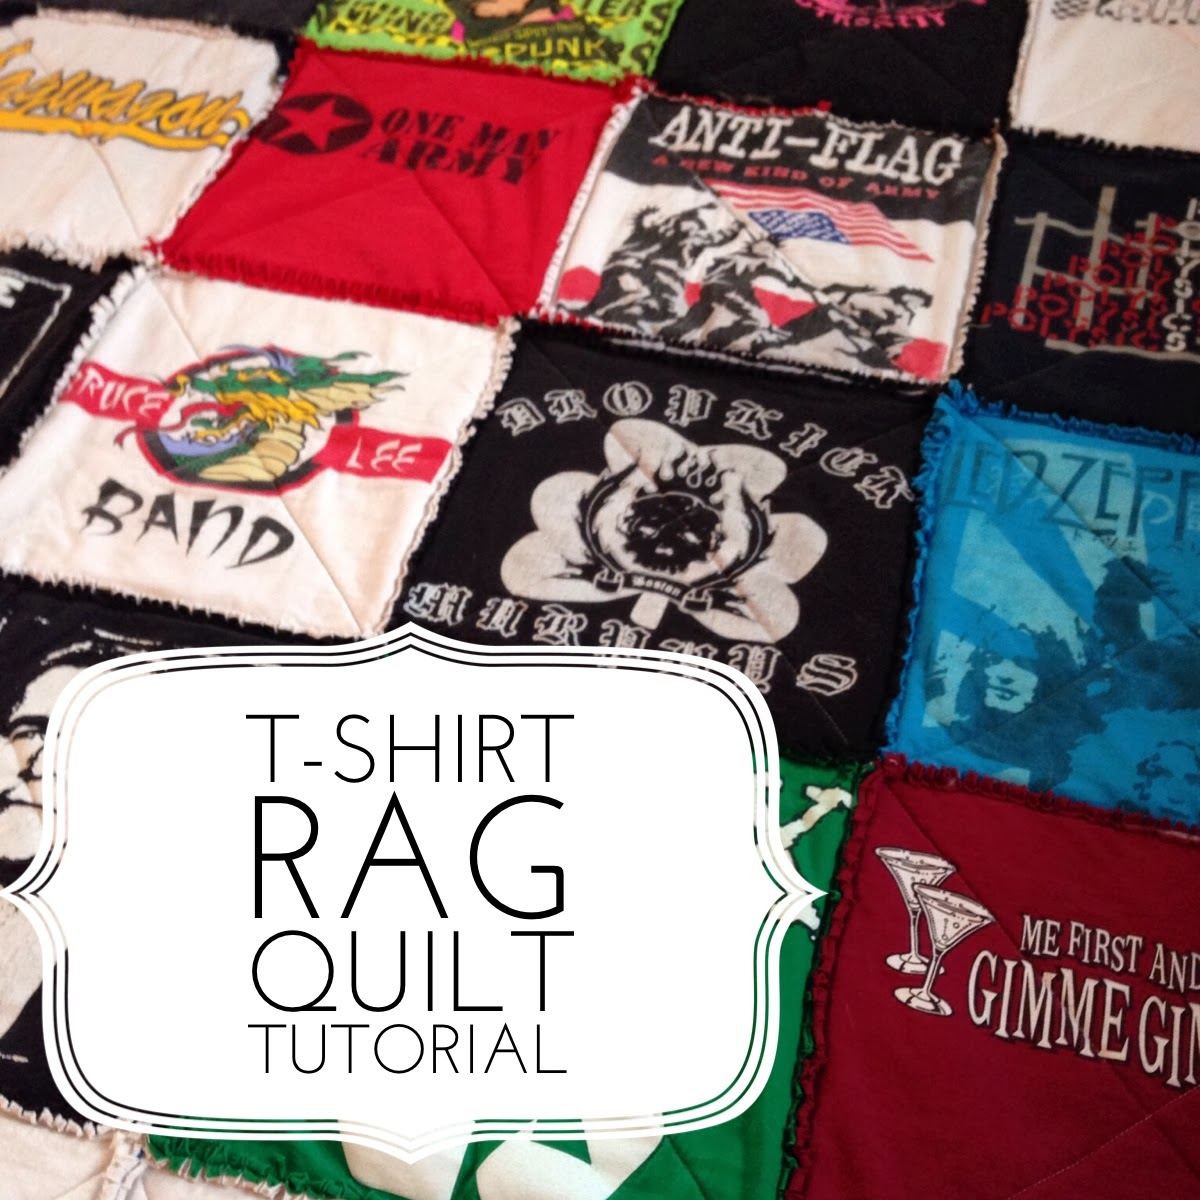 T shirt rag quilt tutorial quilting in the rain for How to make t shirt quilts easy